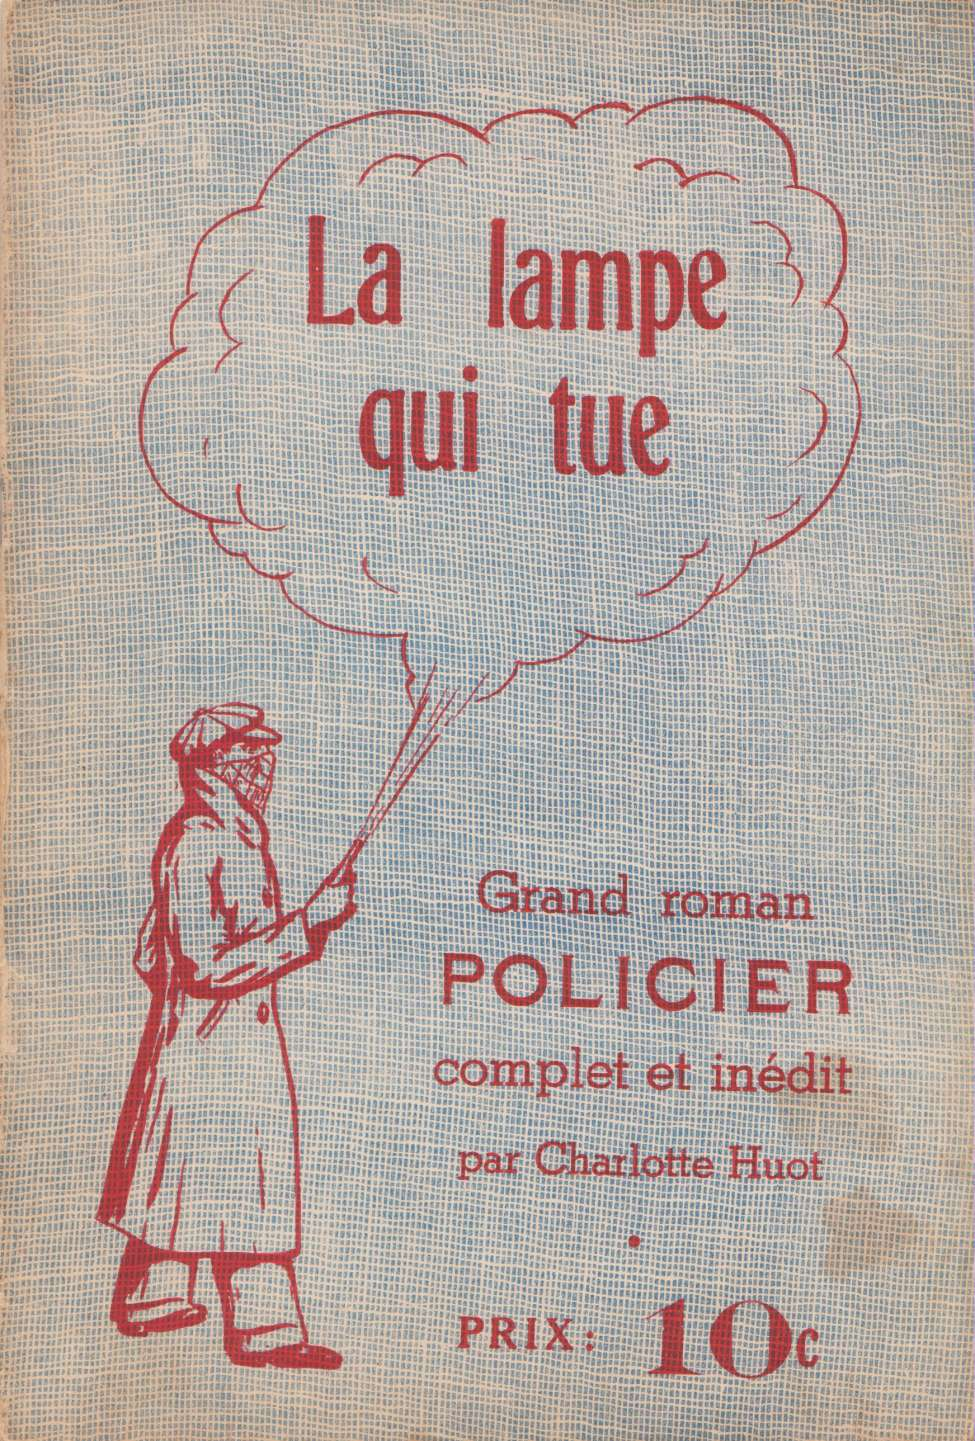 Comic Book Cover For Albert Brien 04 - La lampe qui tue